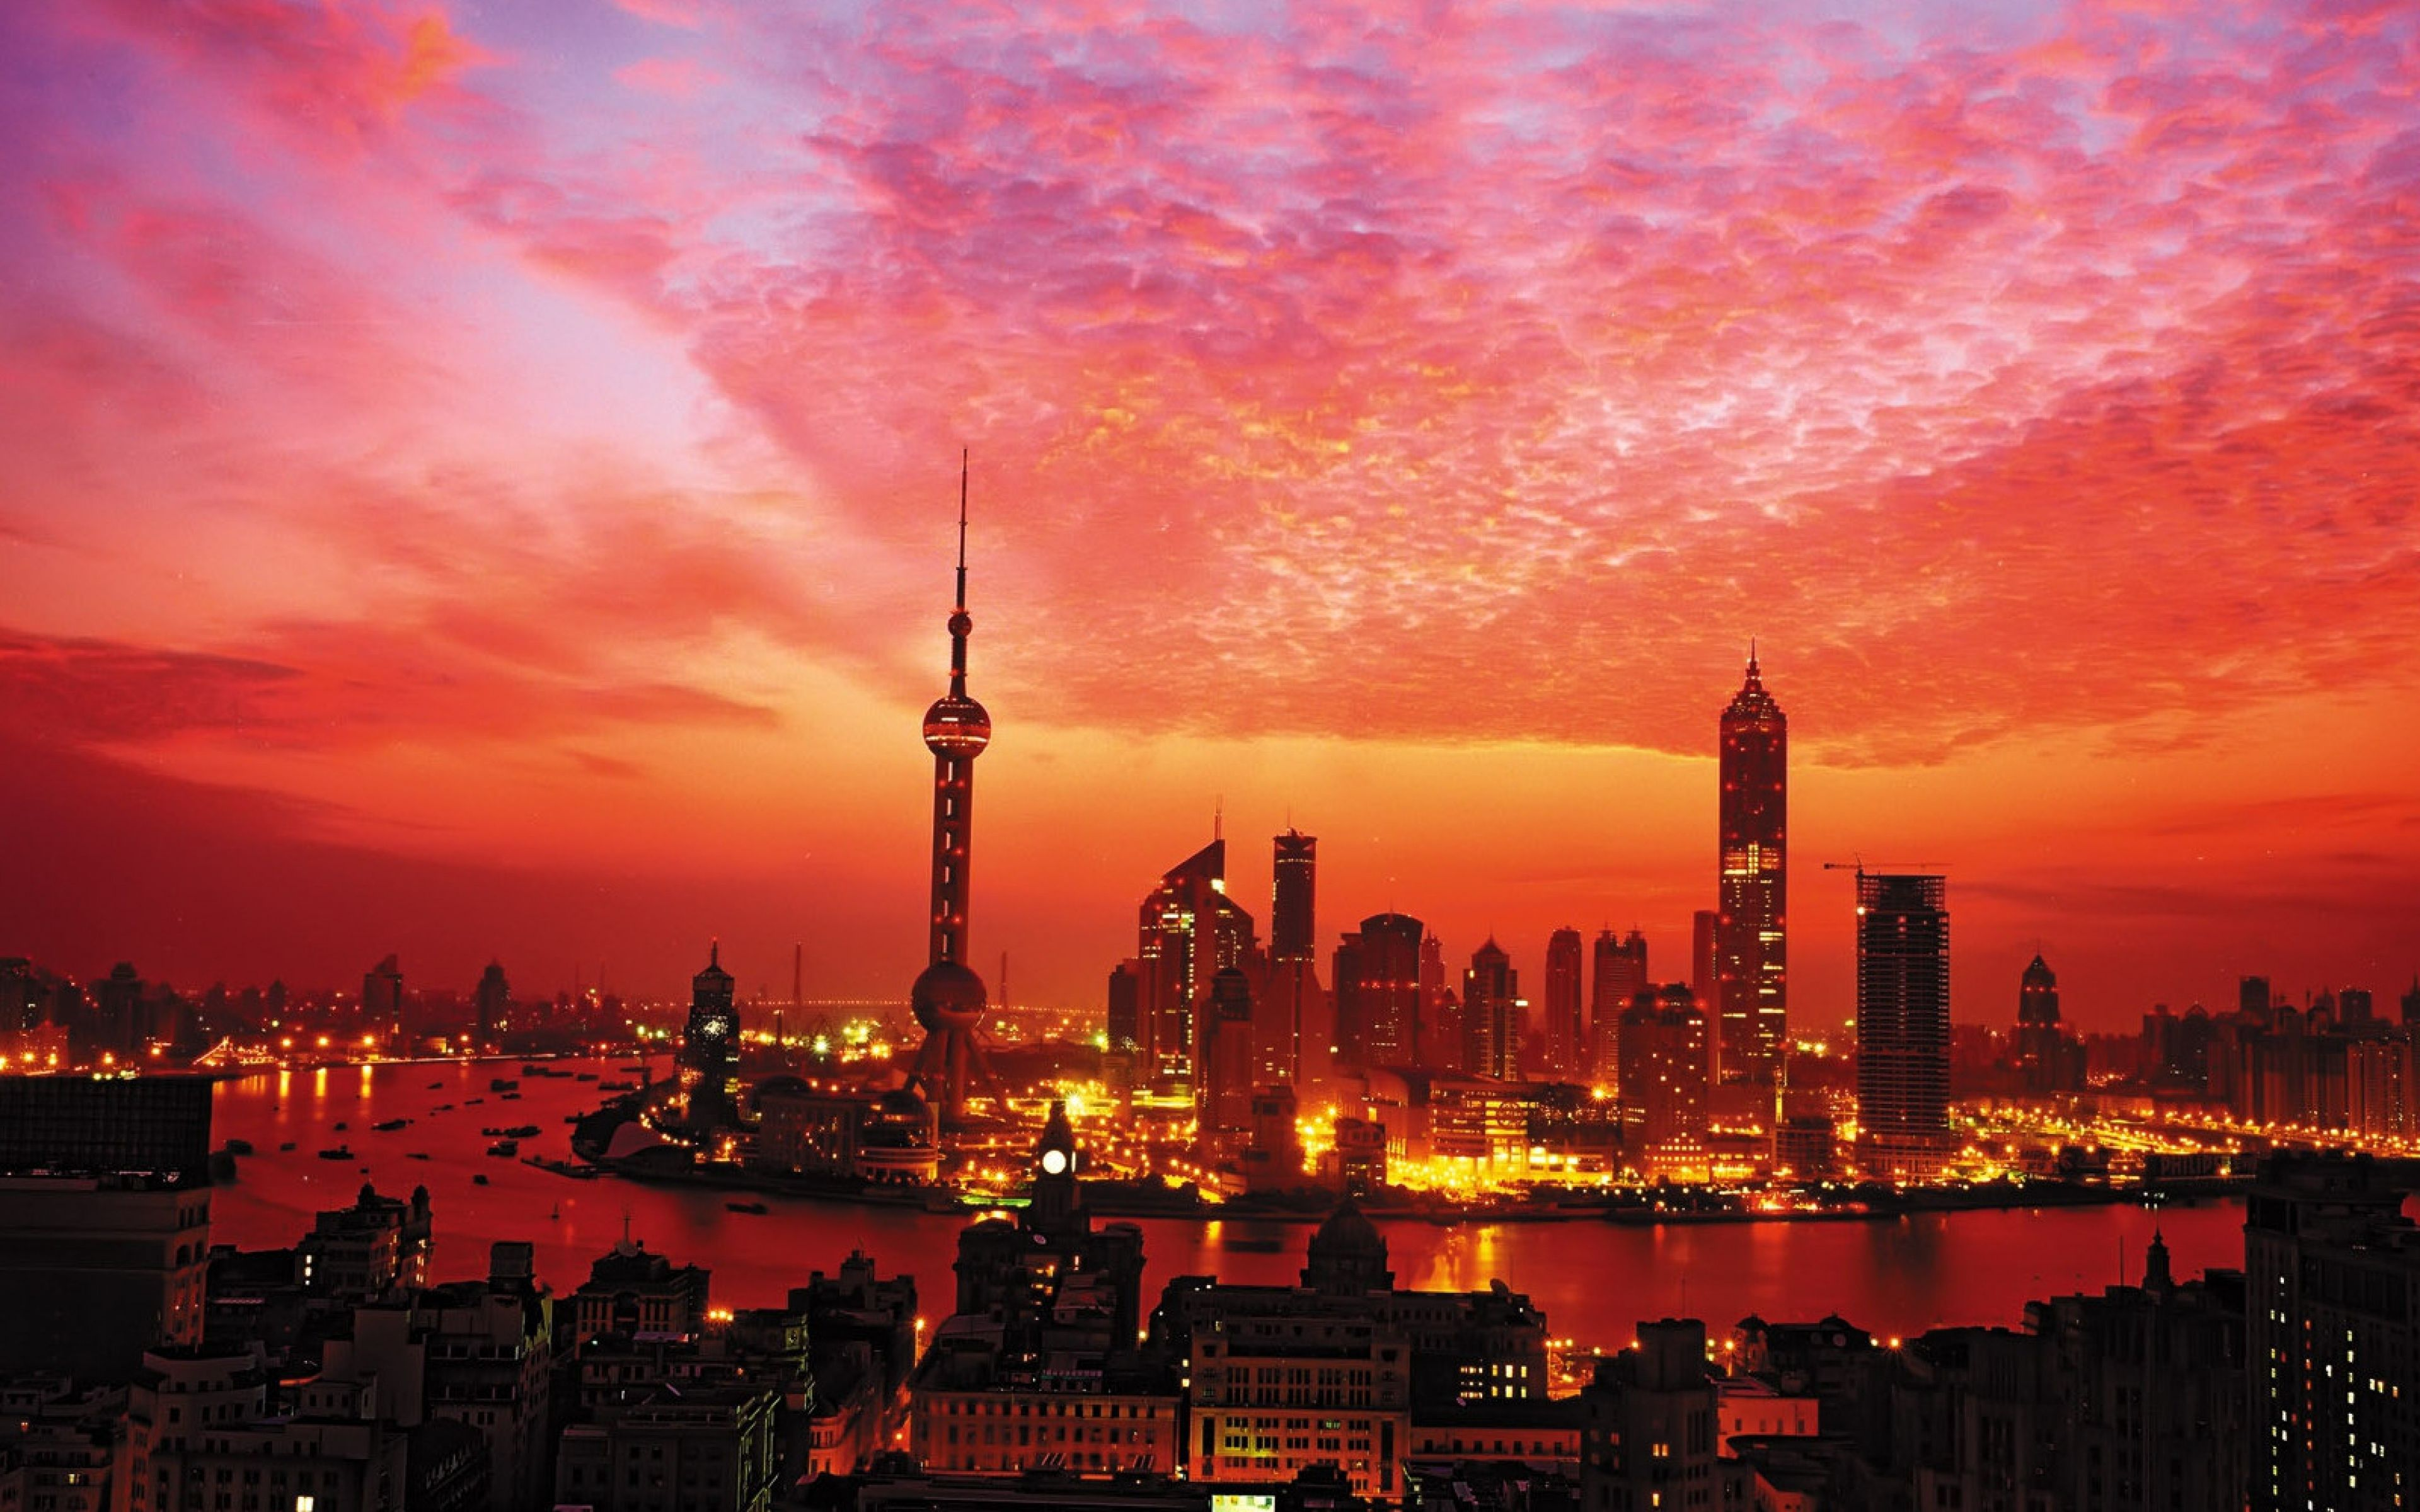 City Sunset Wallpaper Android with HD Wallpaper Resolution 3840x2400 px 2.25 MB | FROGO.COM.NG ...